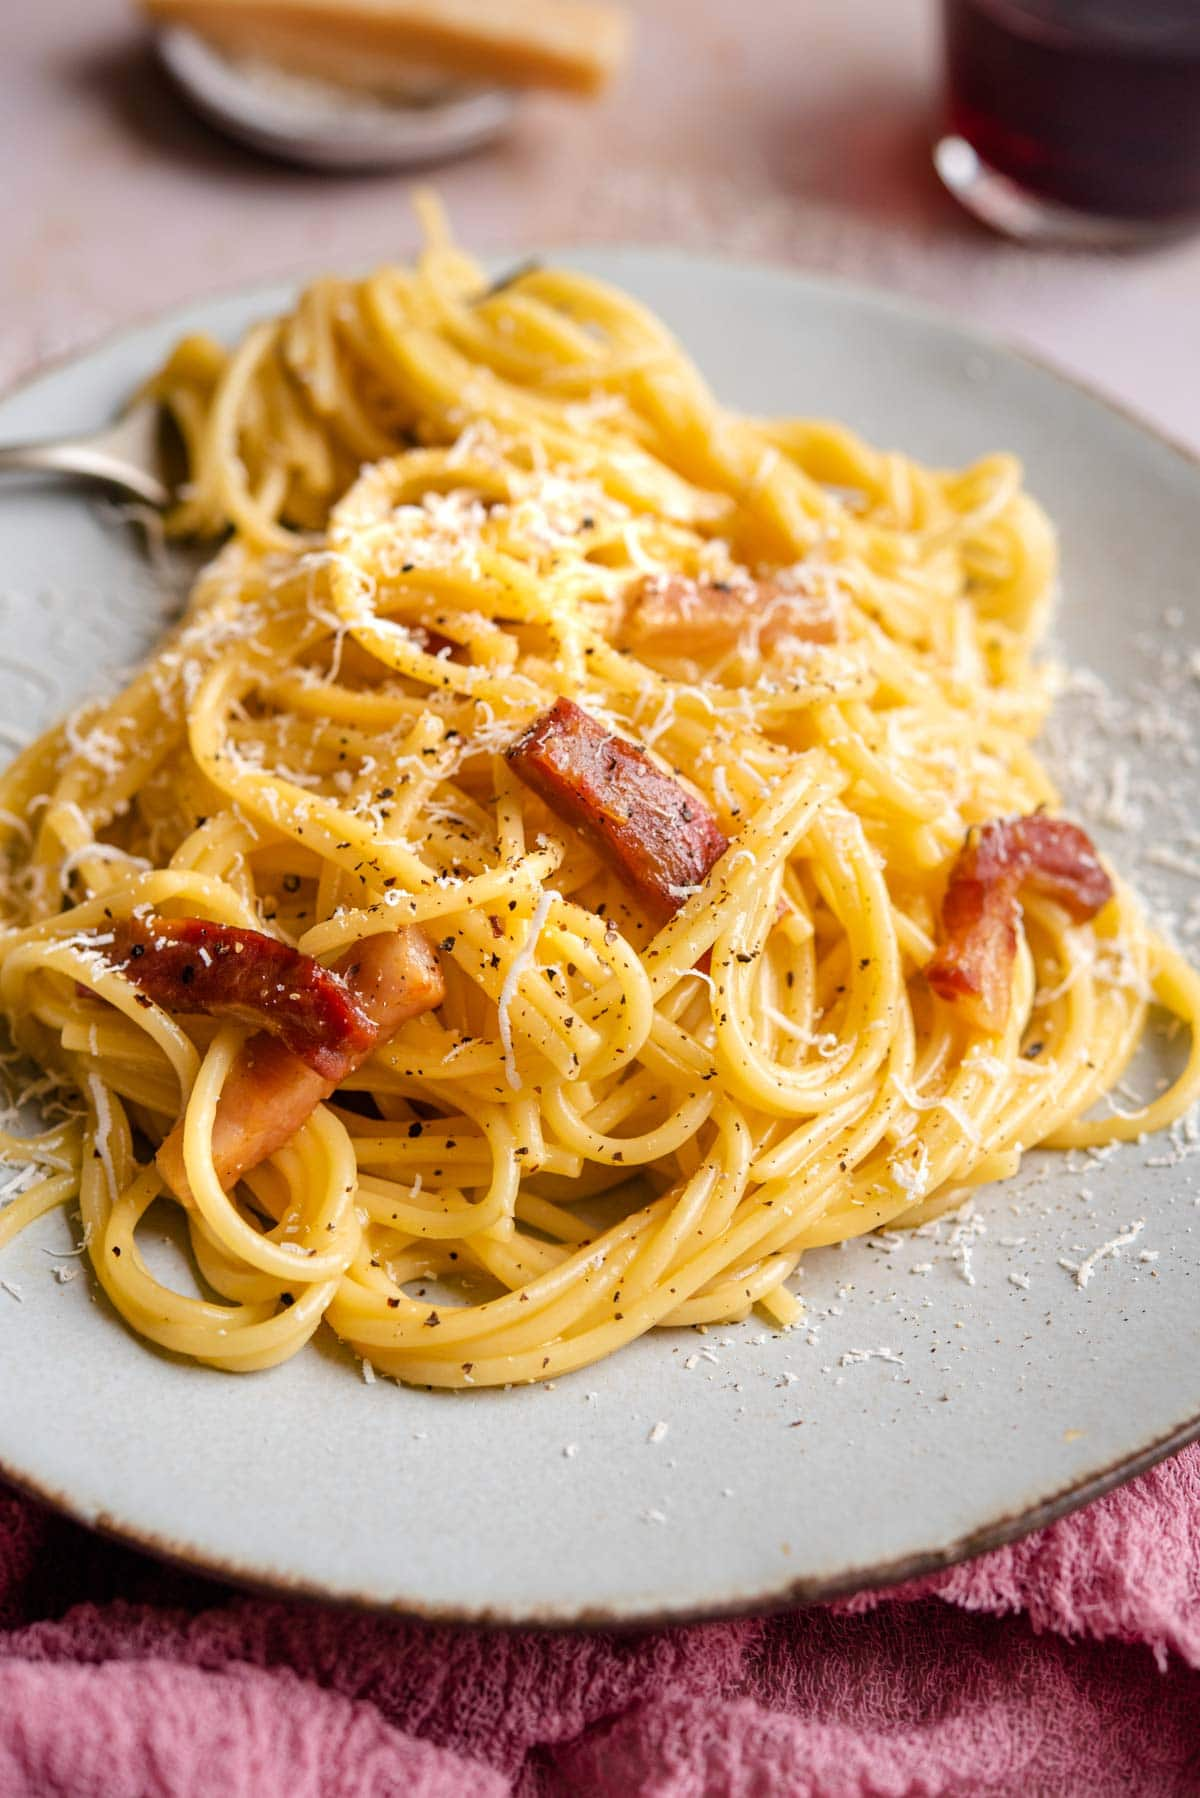 A side shot of spaghetti carbonara on a plate with a fork